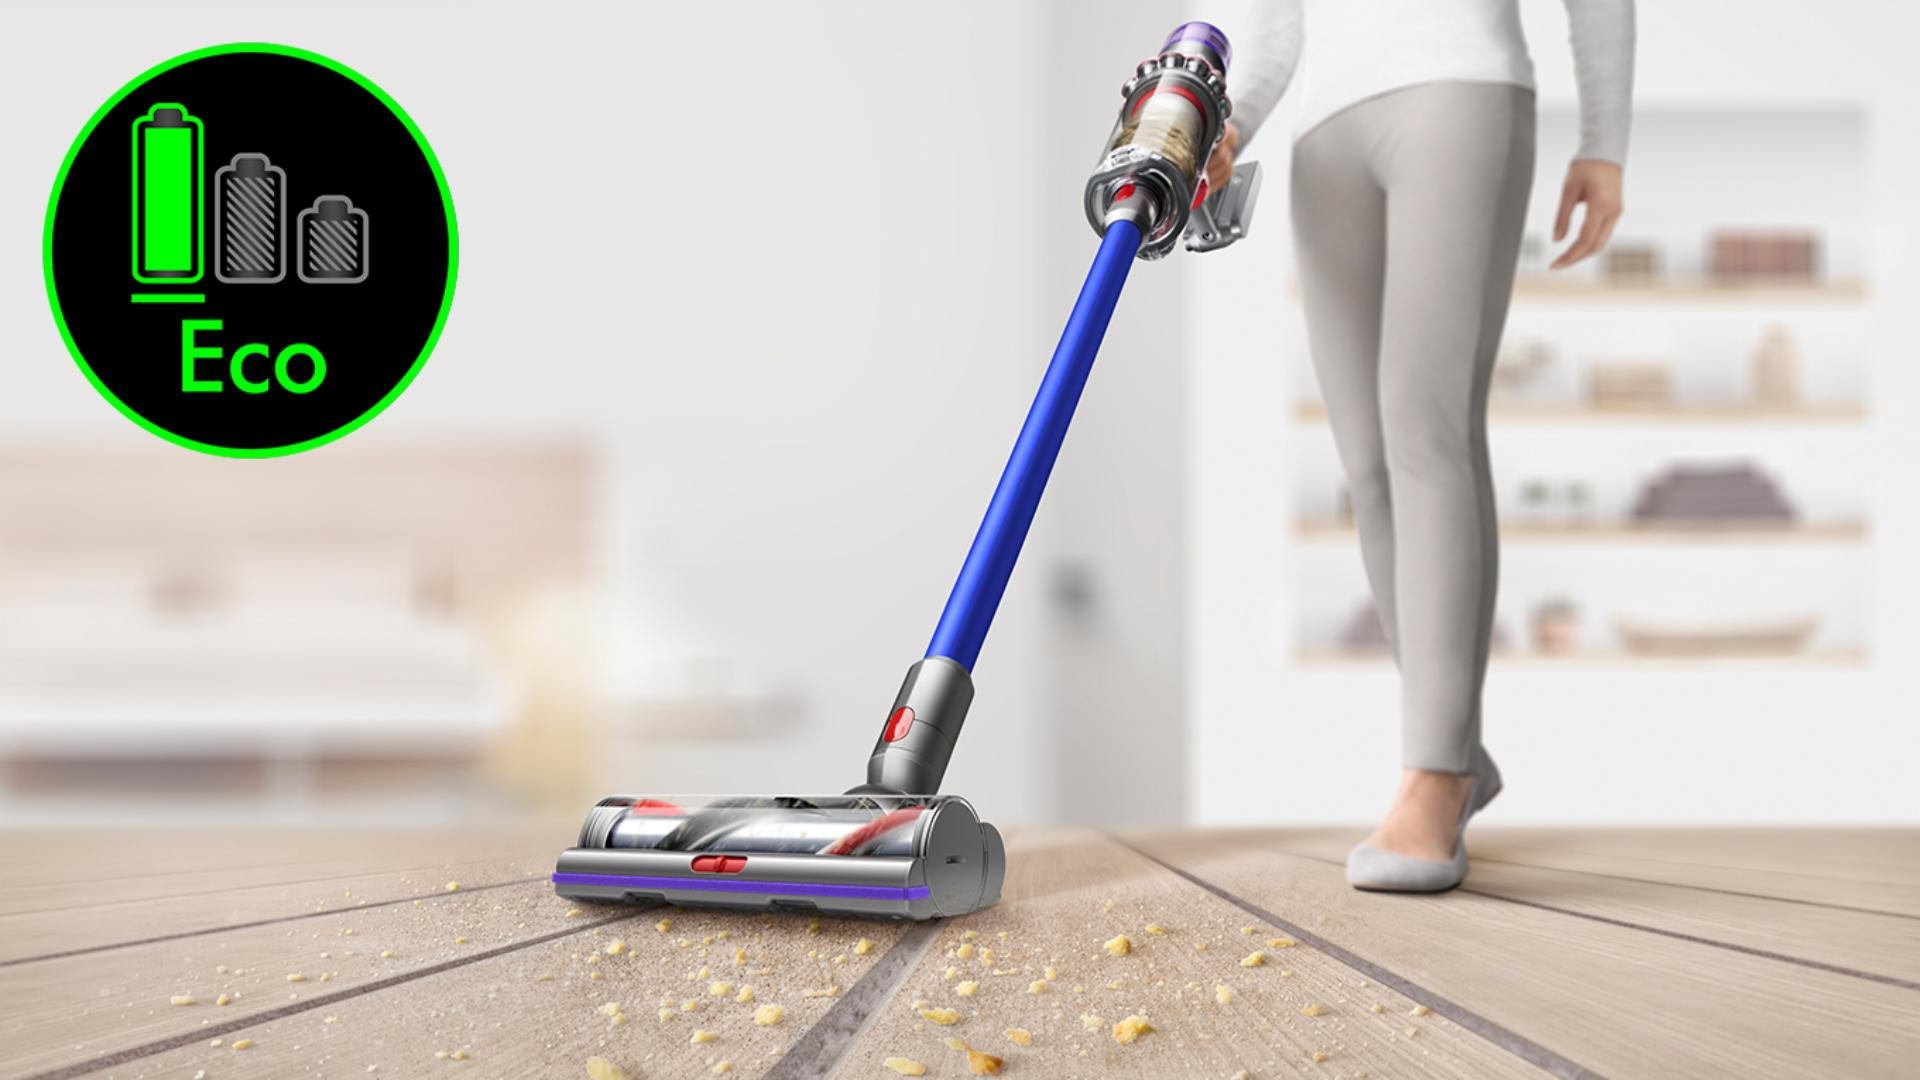 Dyson V11 vacuum cleaner picking up debris from hard floor in the corner is the eco mode logo.